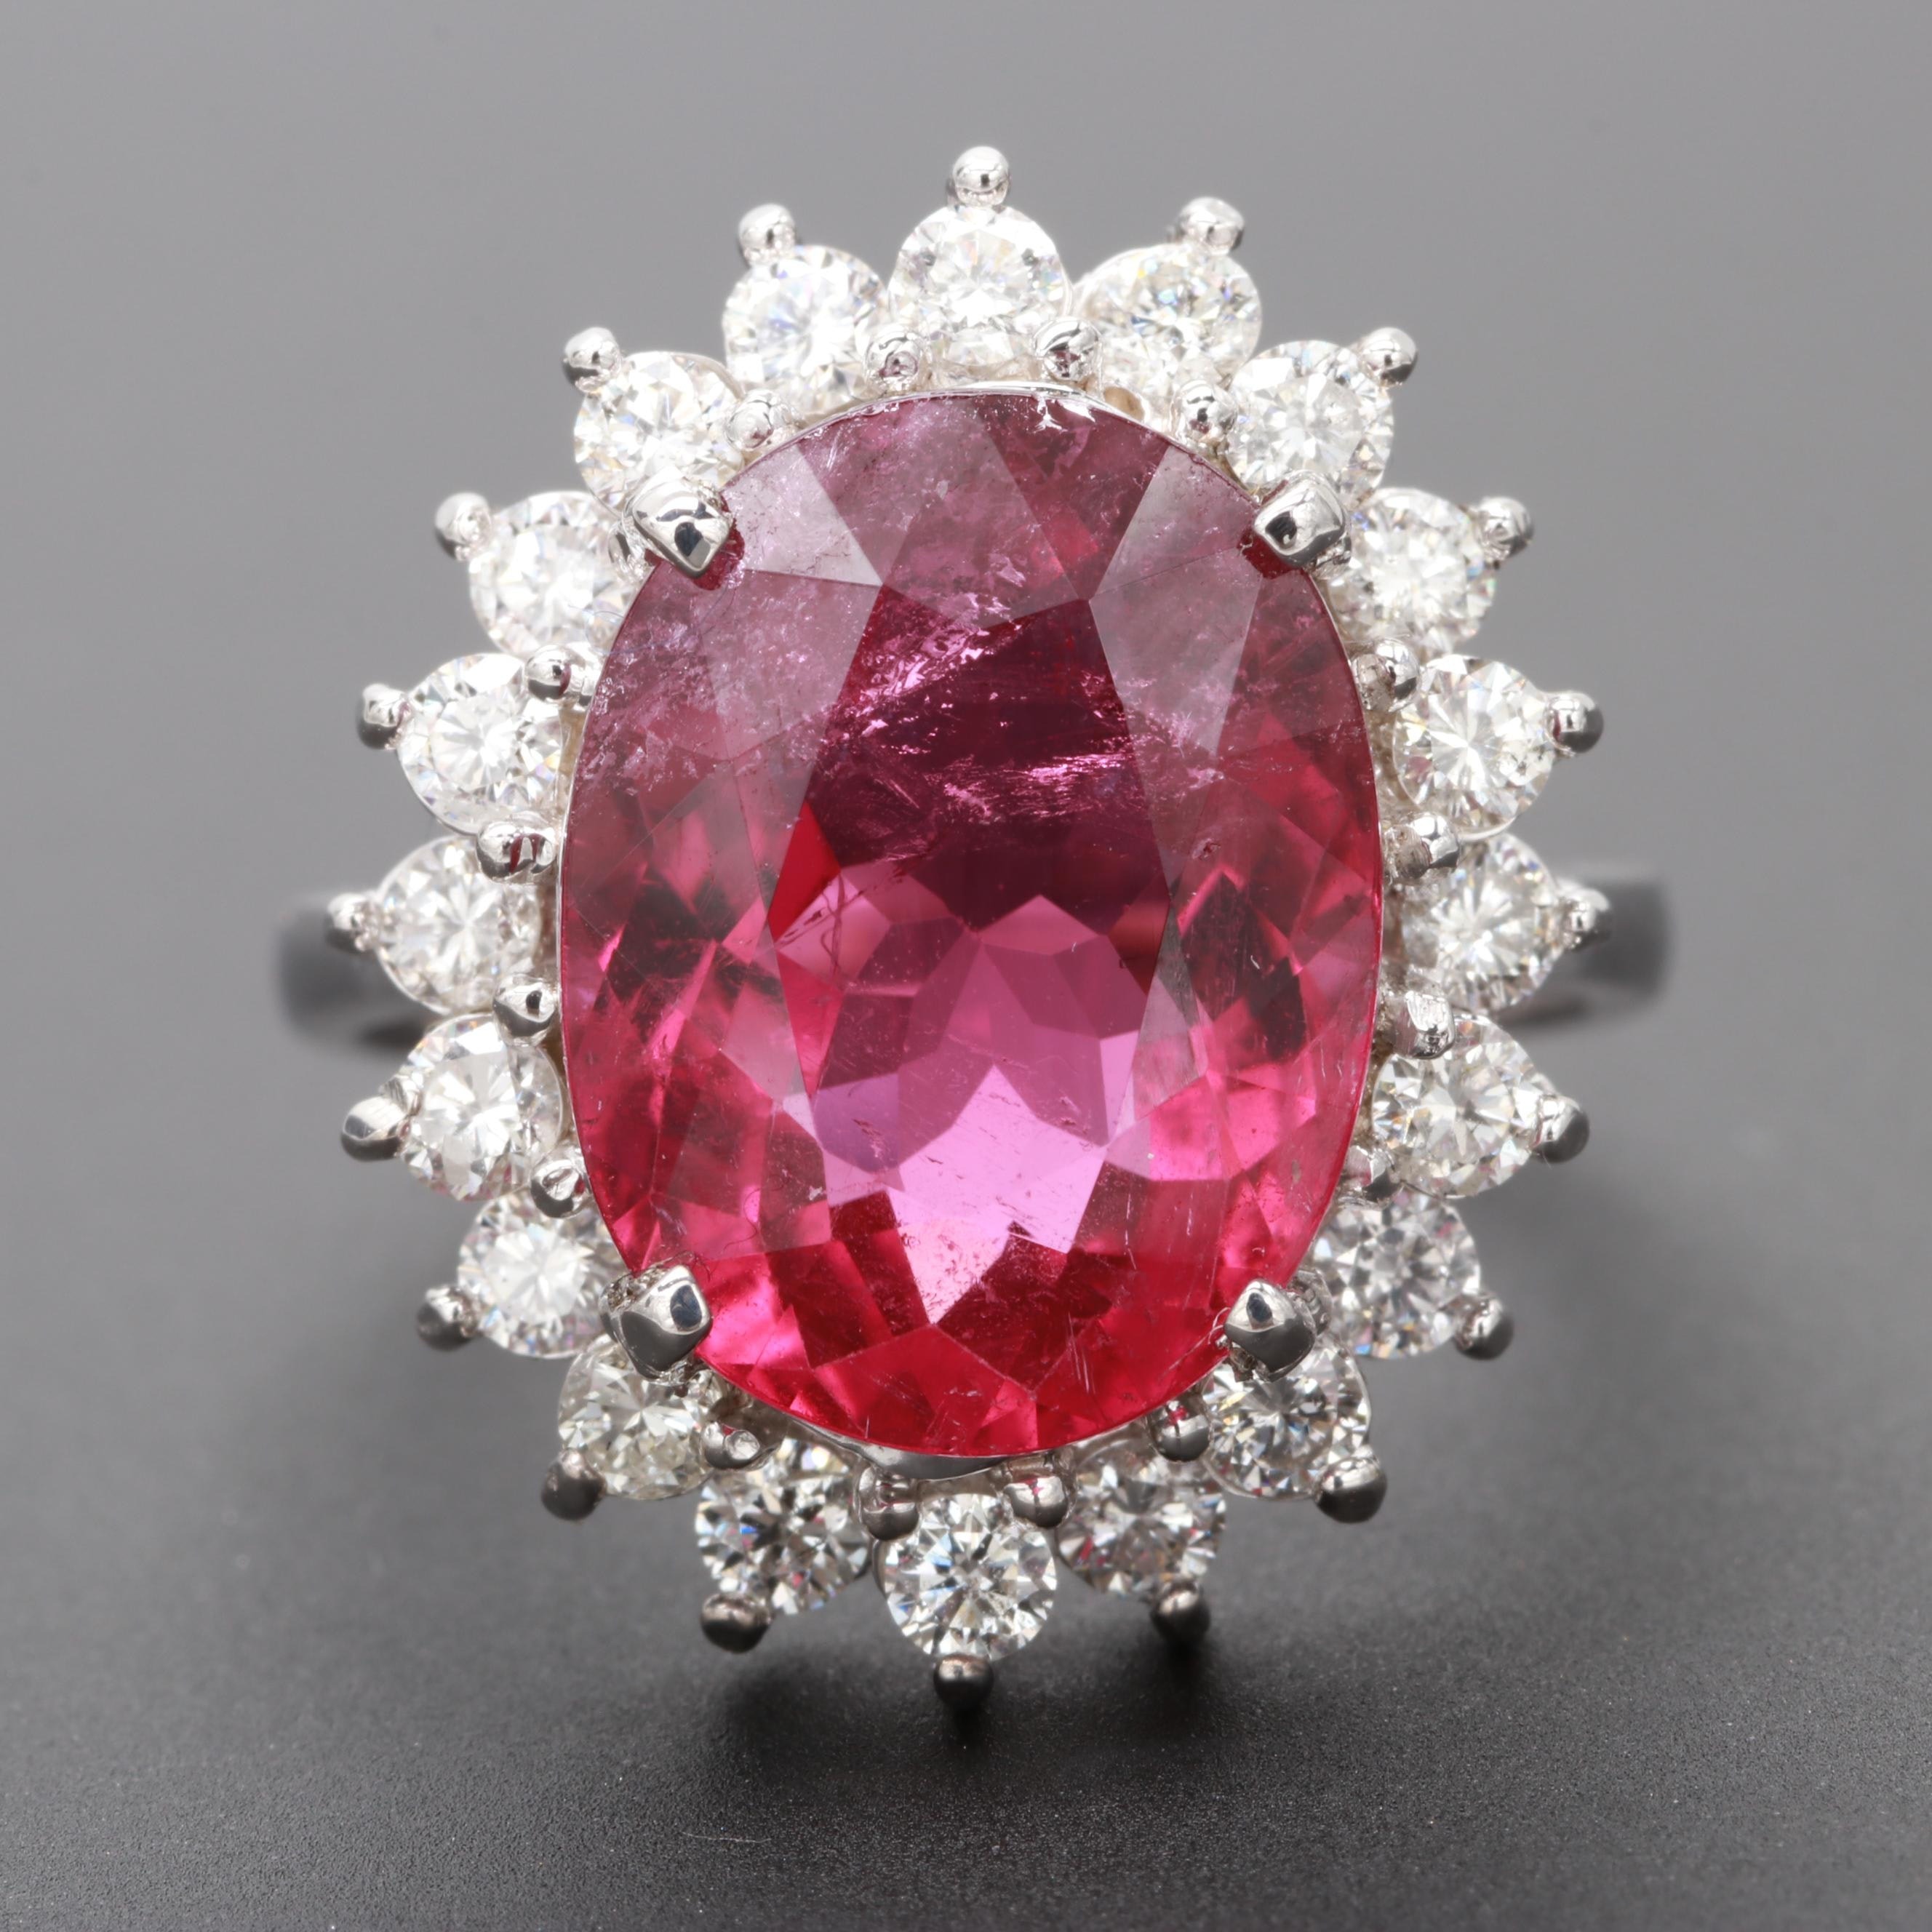 18K White Gold 5.25 CT Pink Tourmaline and Diamond Ring